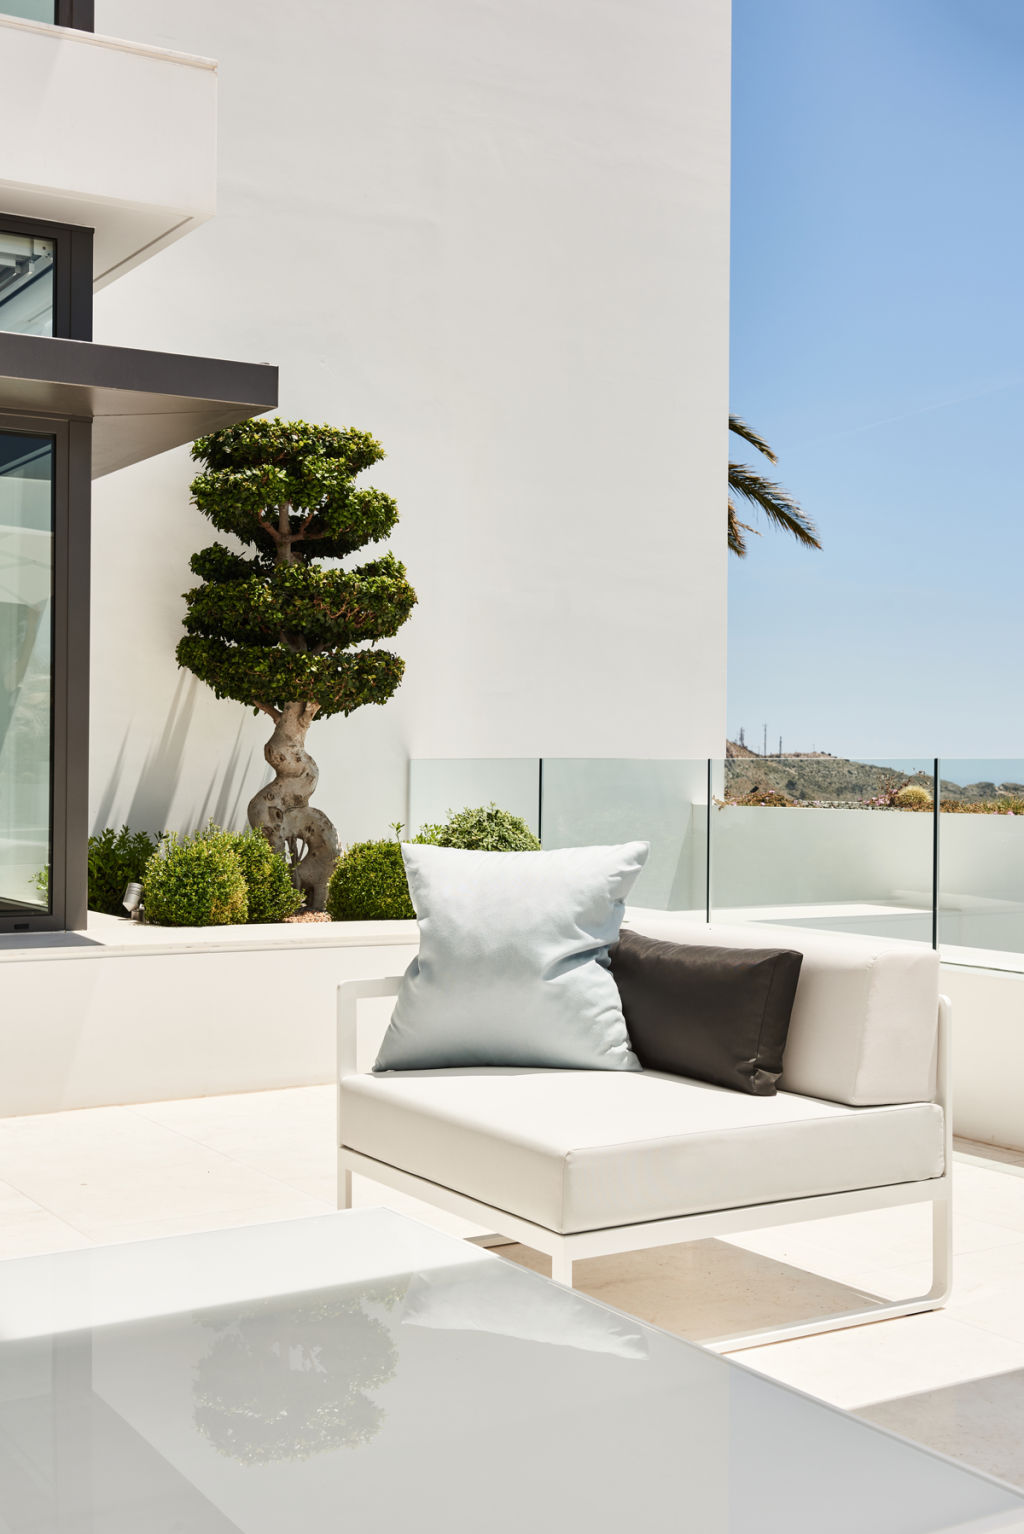 Sit lounge sofa Altea outdoor furniture bivaq blueport altea luxury